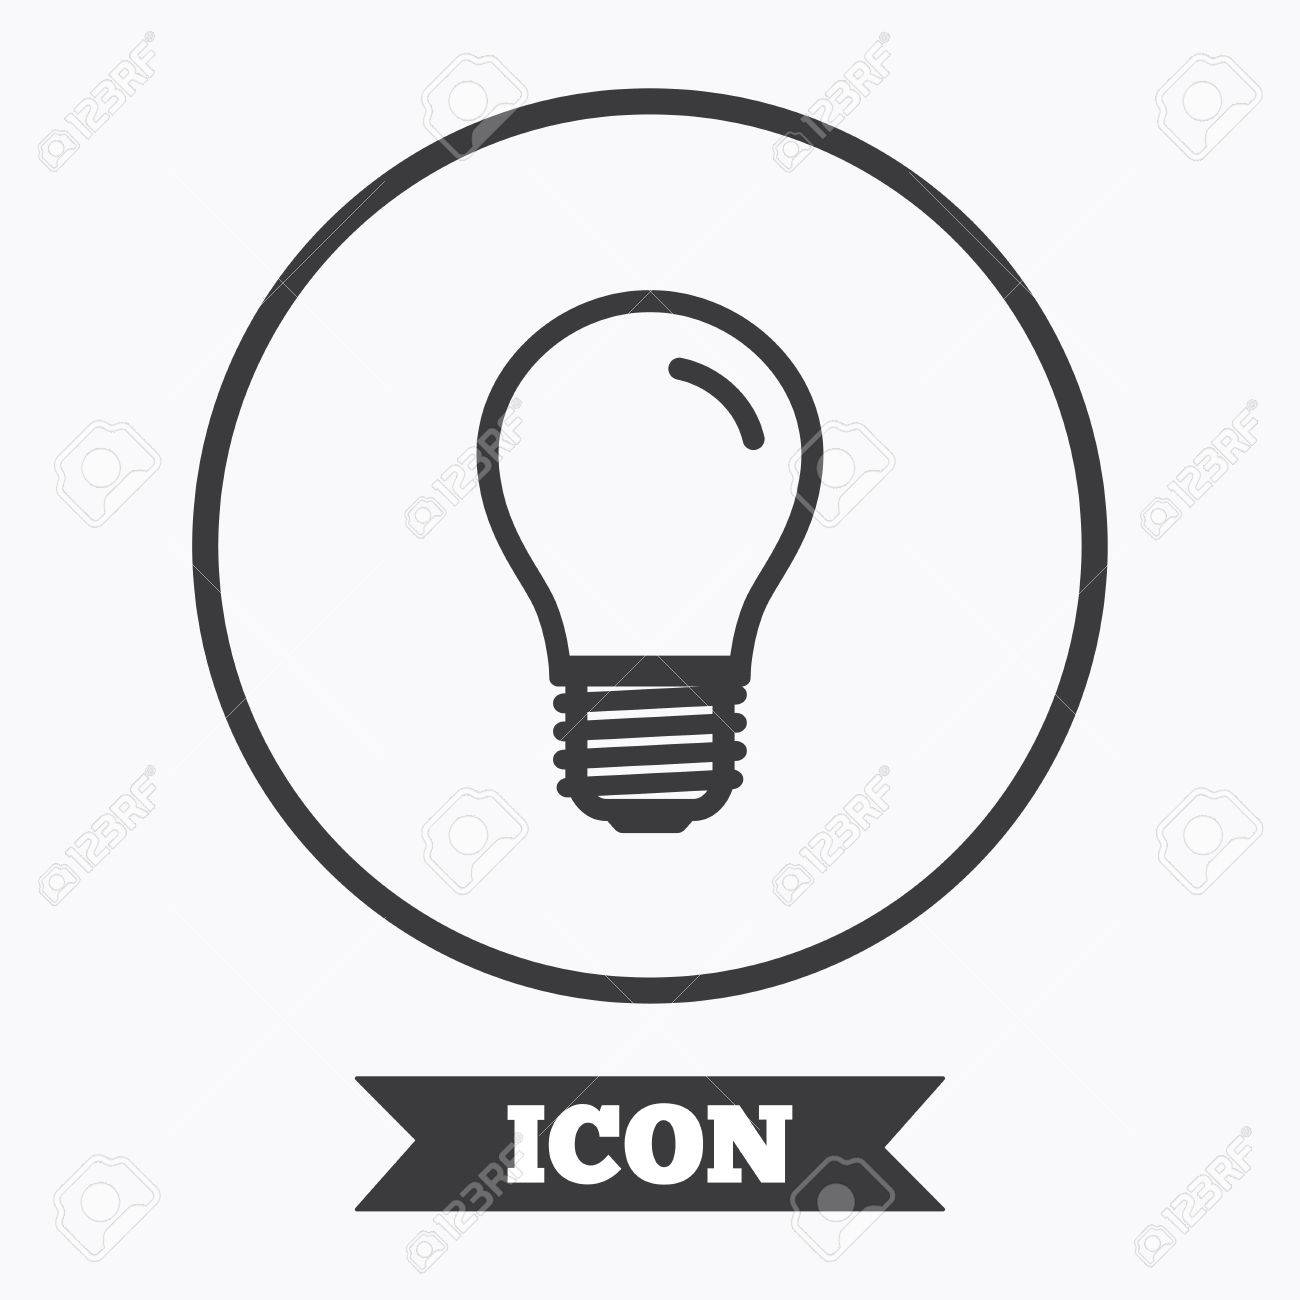 Light bulb icon lamp e27 screw socket symbol led light sign light bulb icon lamp e27 screw socket symbol led light sign graphic design biocorpaavc Images